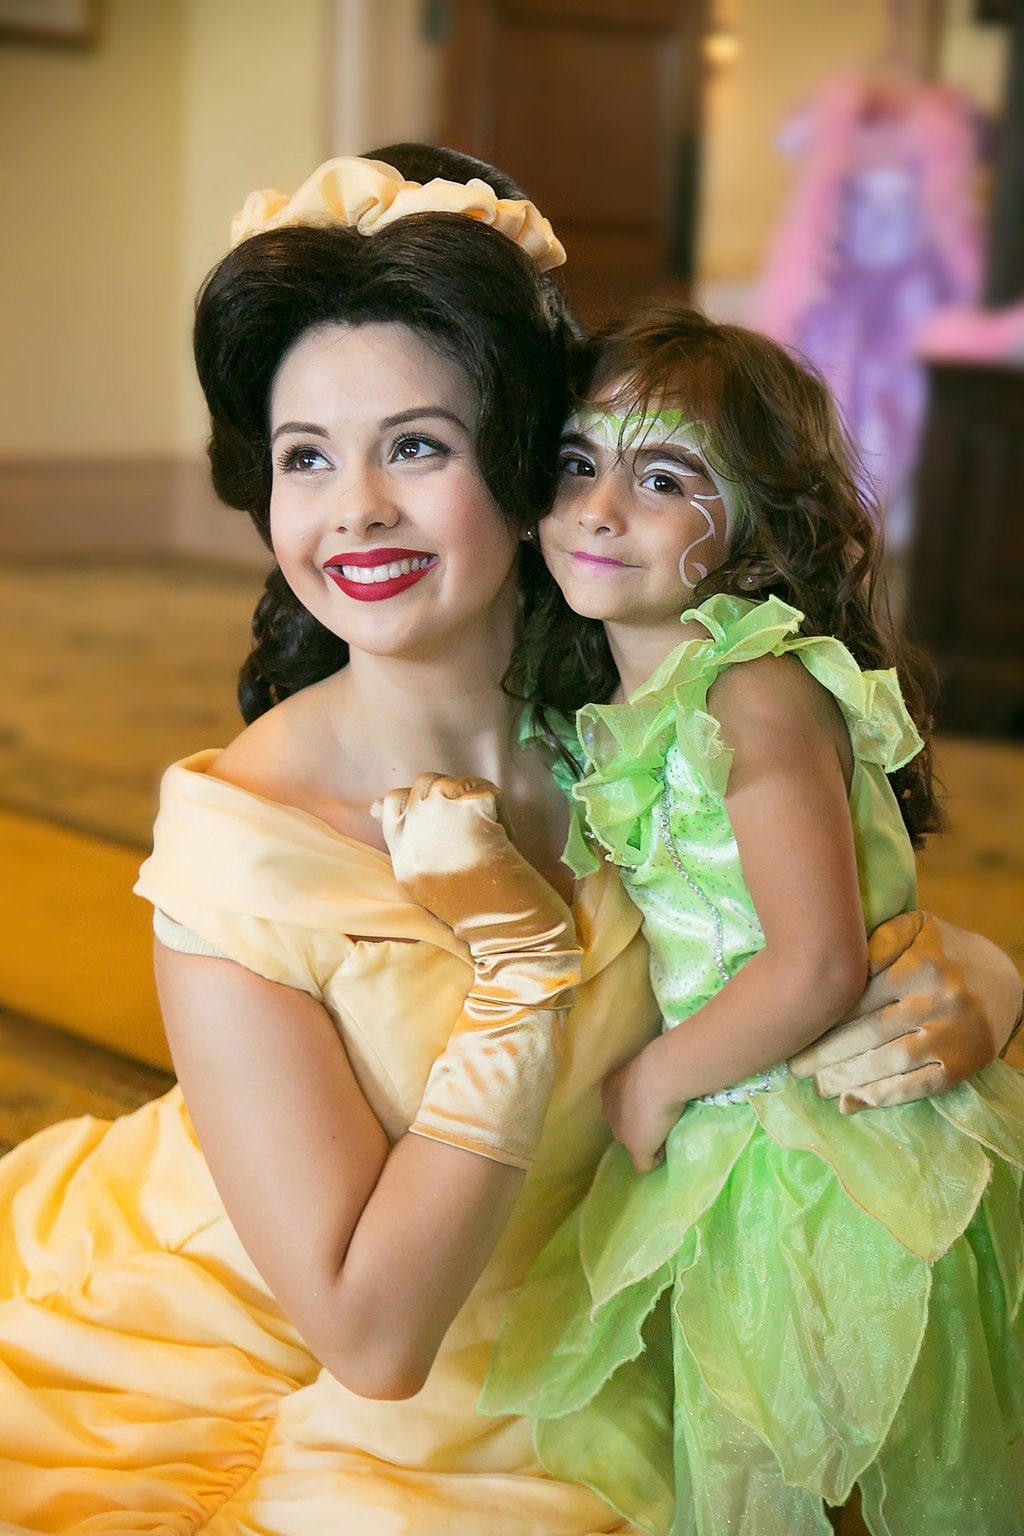 Napa Princess Parties | Amazing Fairytale Parties Character Visits